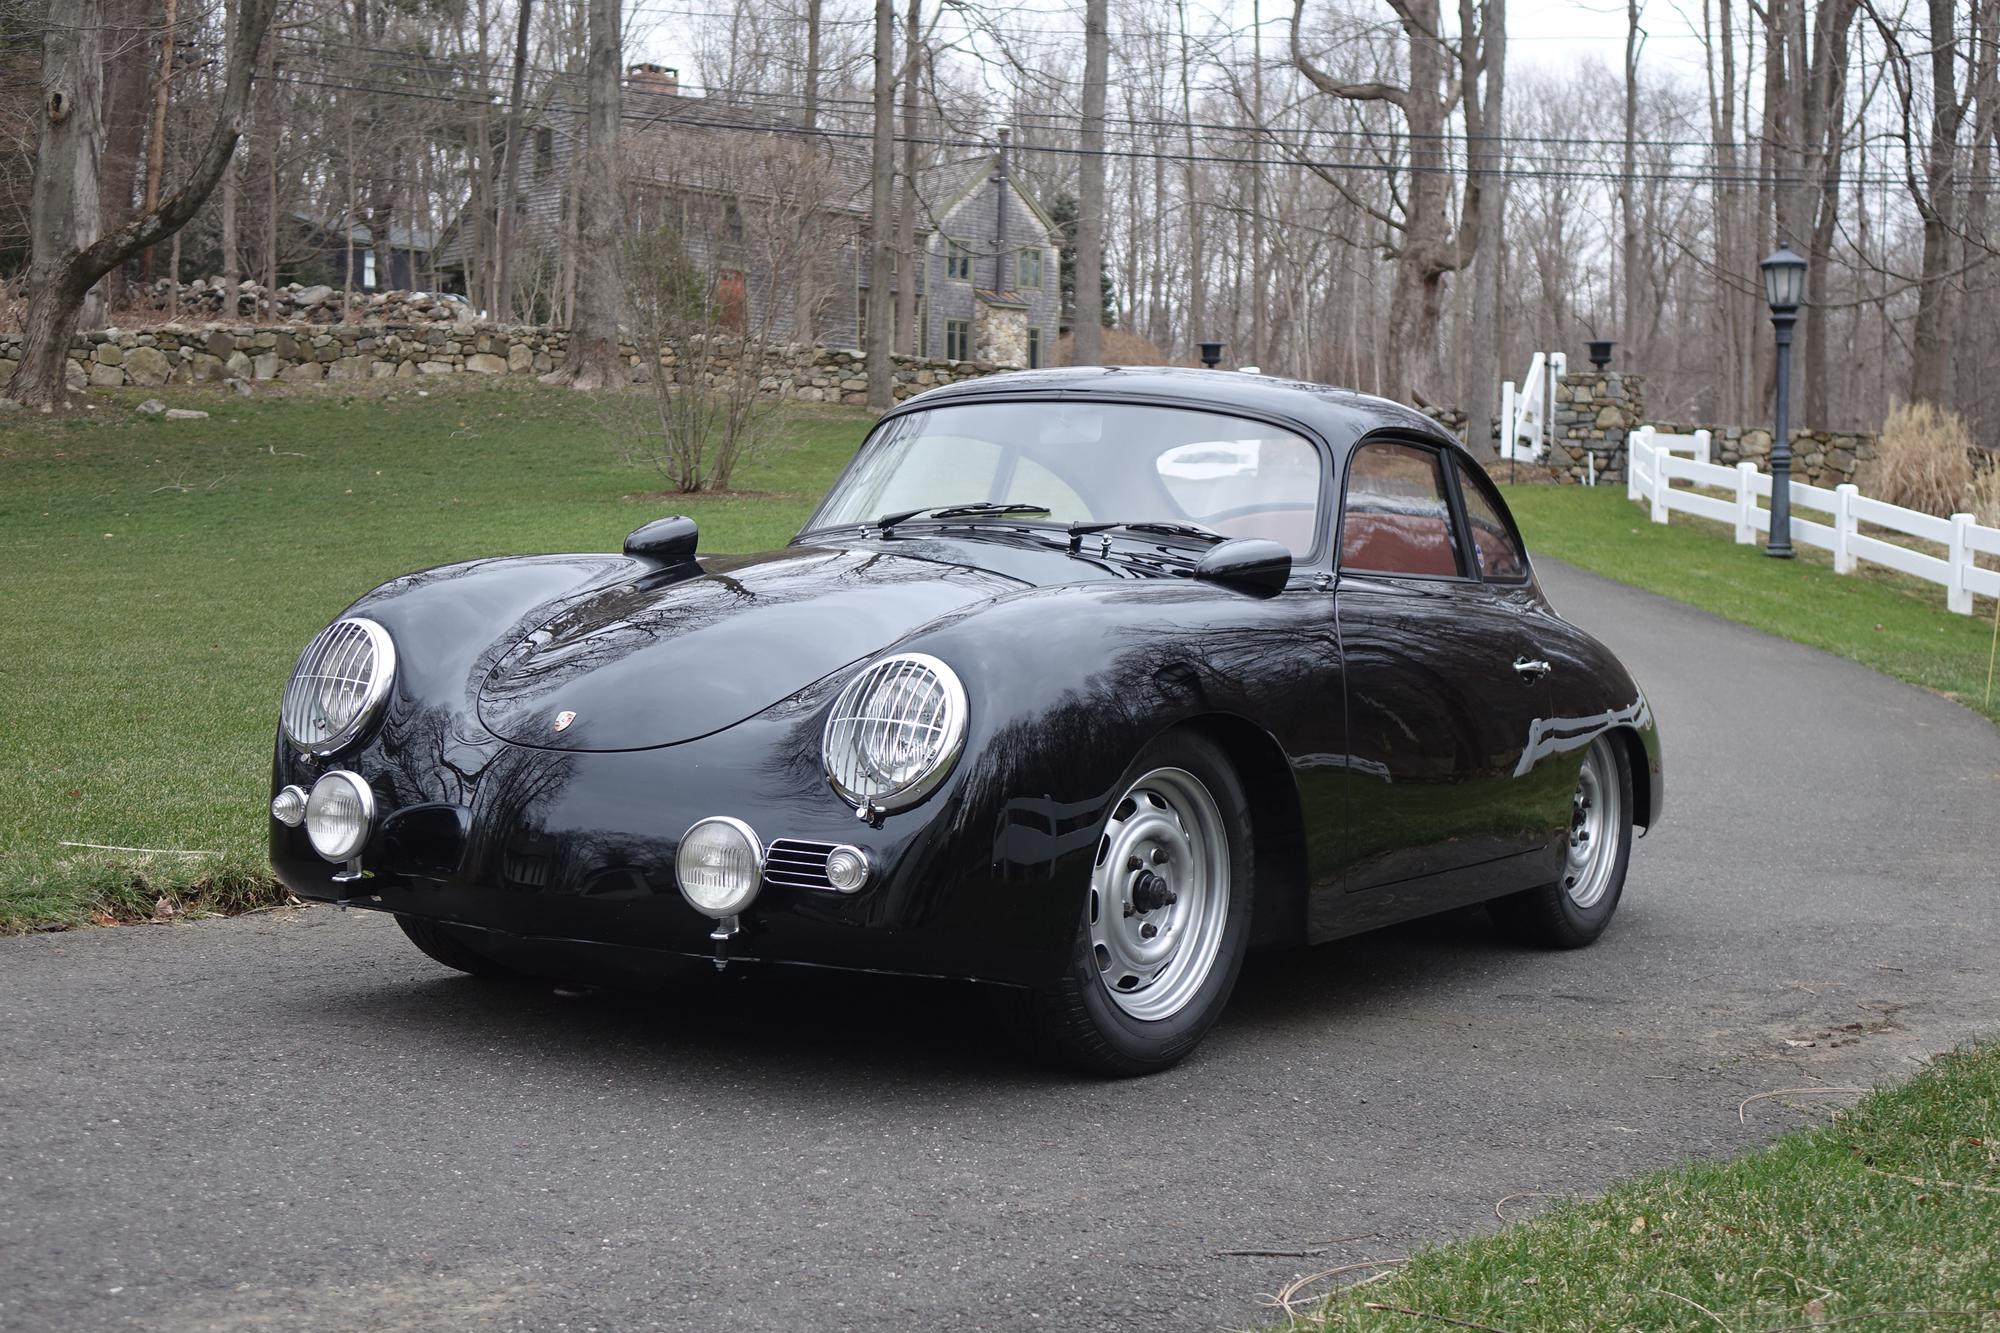 1958 Porsche 356 A 'Golde' Sunroof / Outlaw Coupe